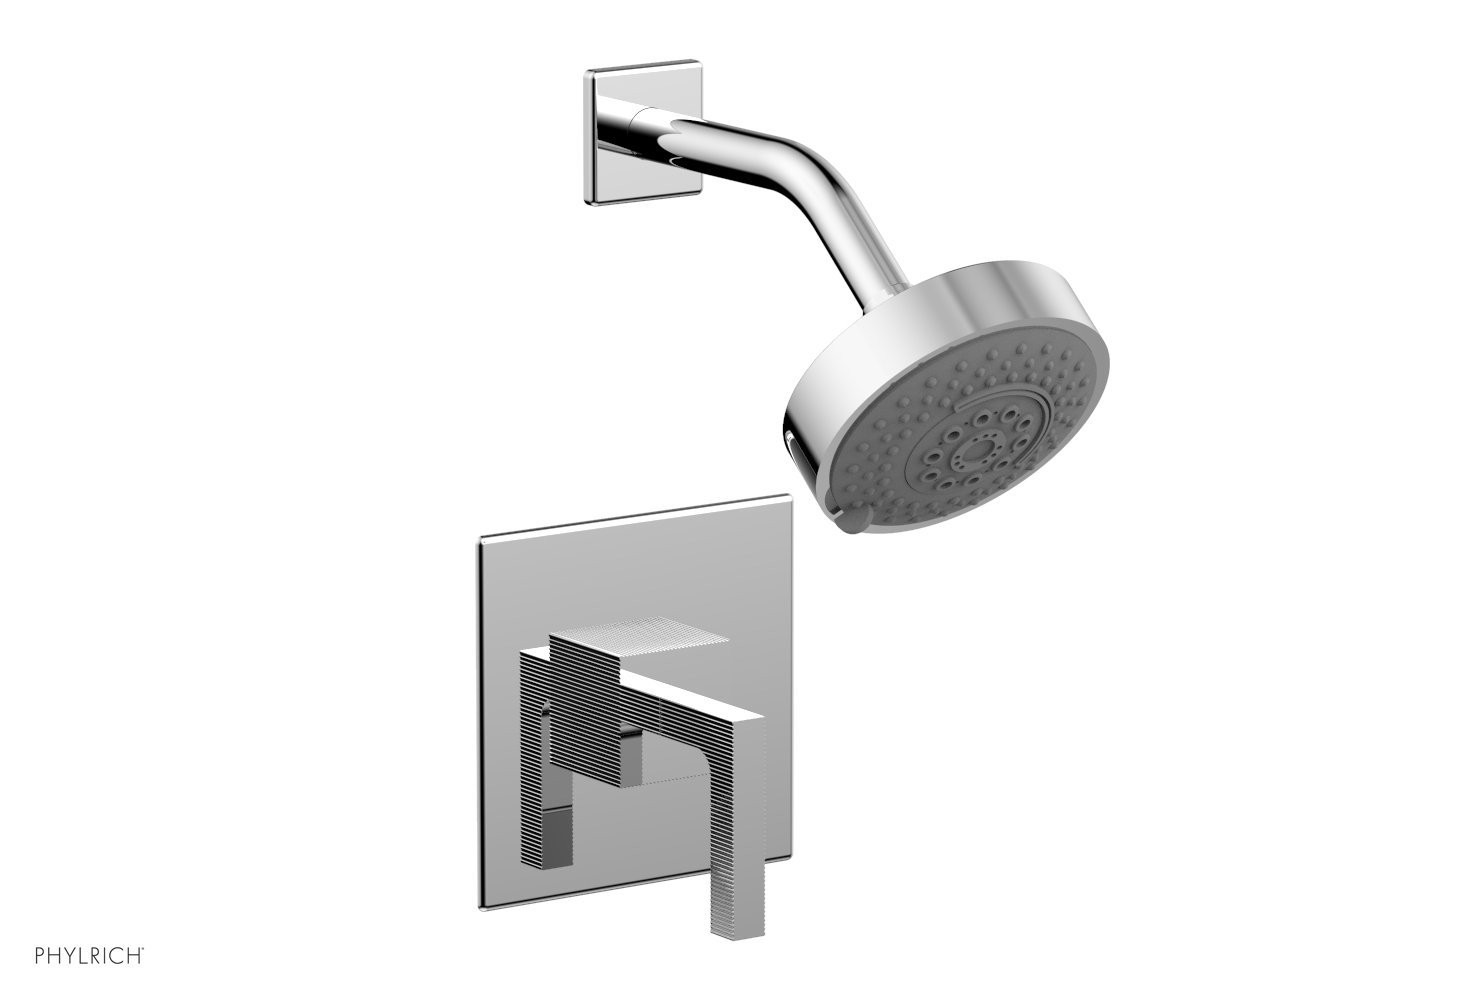 PHYLRICH 291-22 STRIA WALL MOUNT PRESSURE BALANCE SHOWER SET WITH LEVER HANDLE